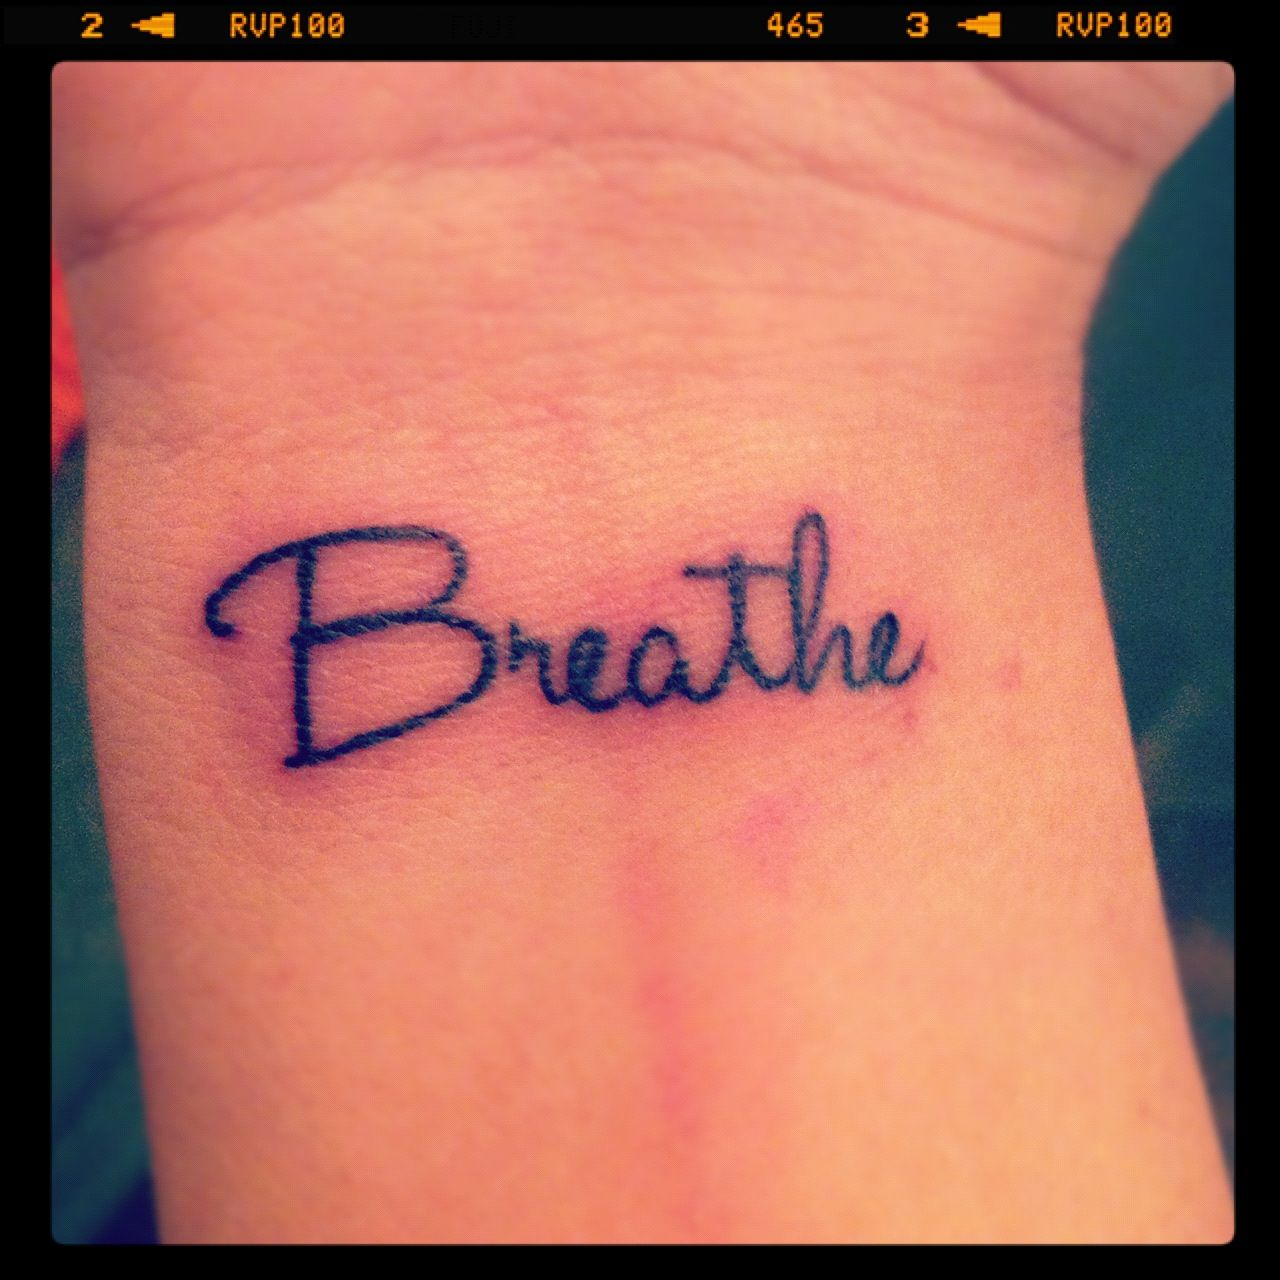 Just Breathe Tattoo Quotes Image Quotes At Hippoquotes Com: Breathe Wrist Tattoo